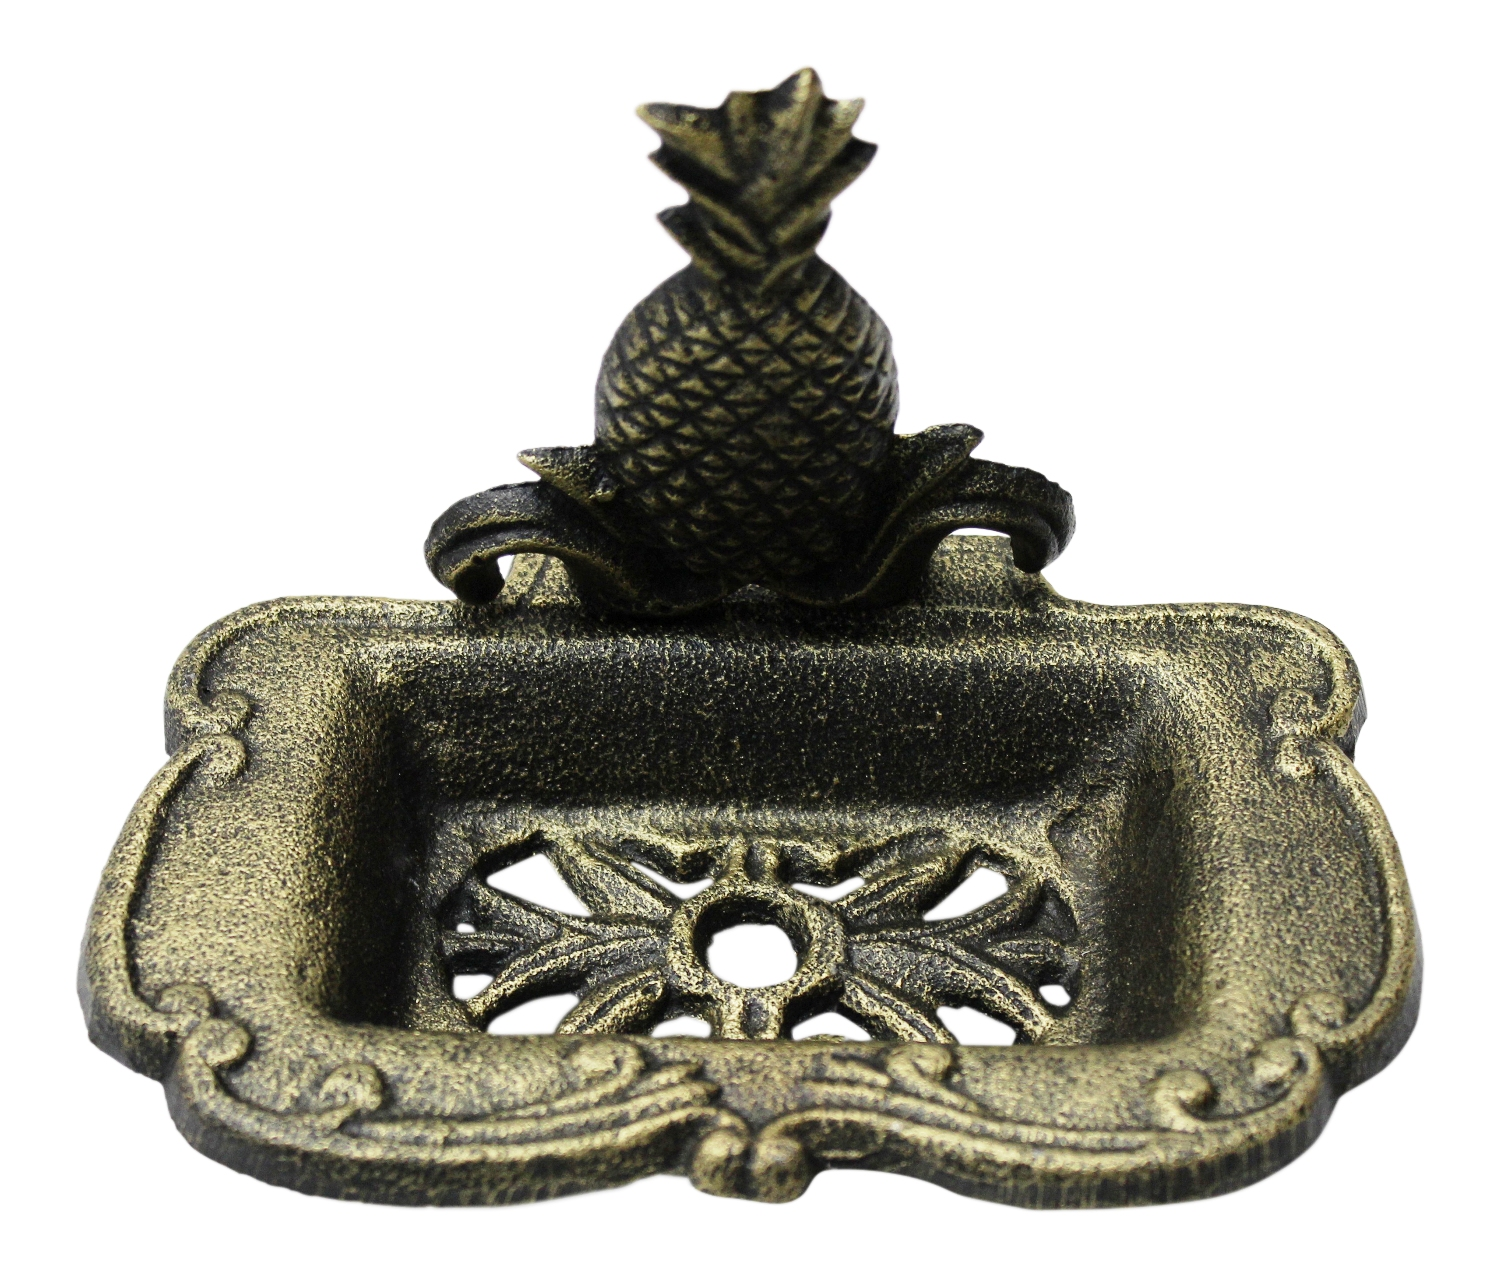 Bath SOAP DISH Holder Hand Painted Ceramic Pansy Pineapple Crocodile